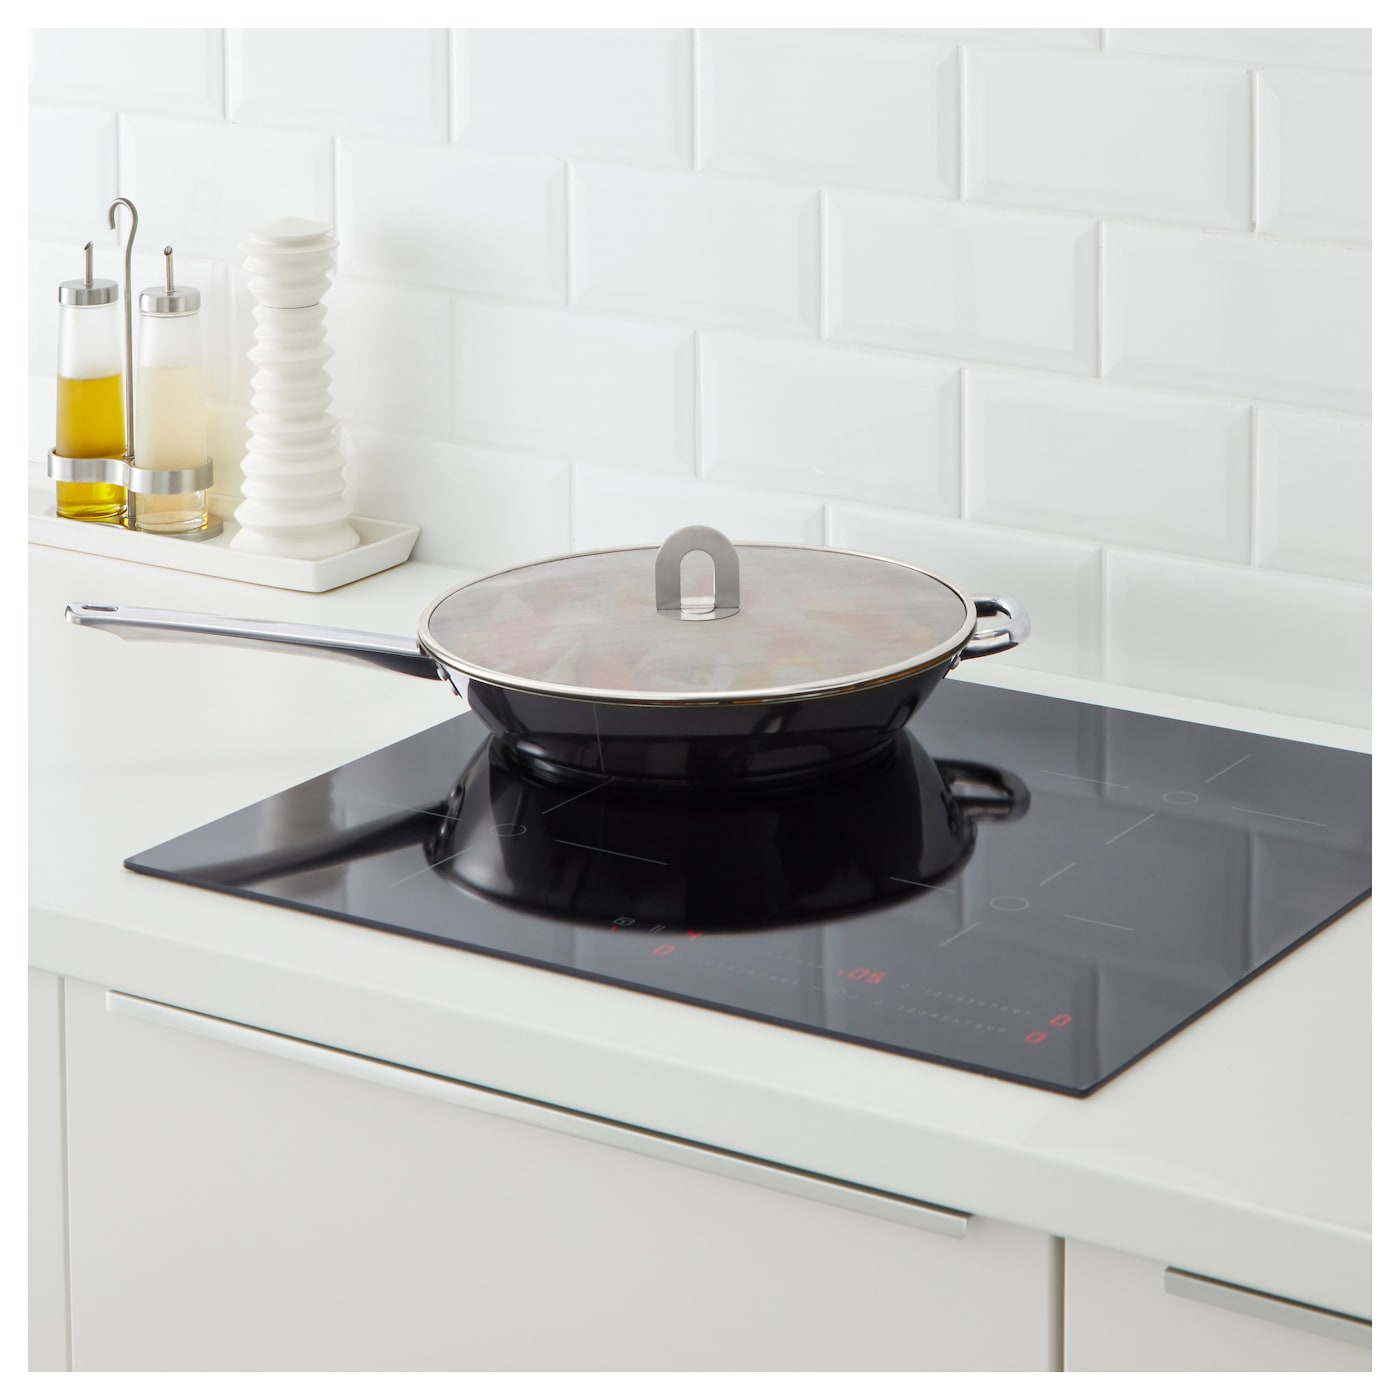 IKEA STABIL splatter screen Holds most frying pans up to 32 cm in diameter.